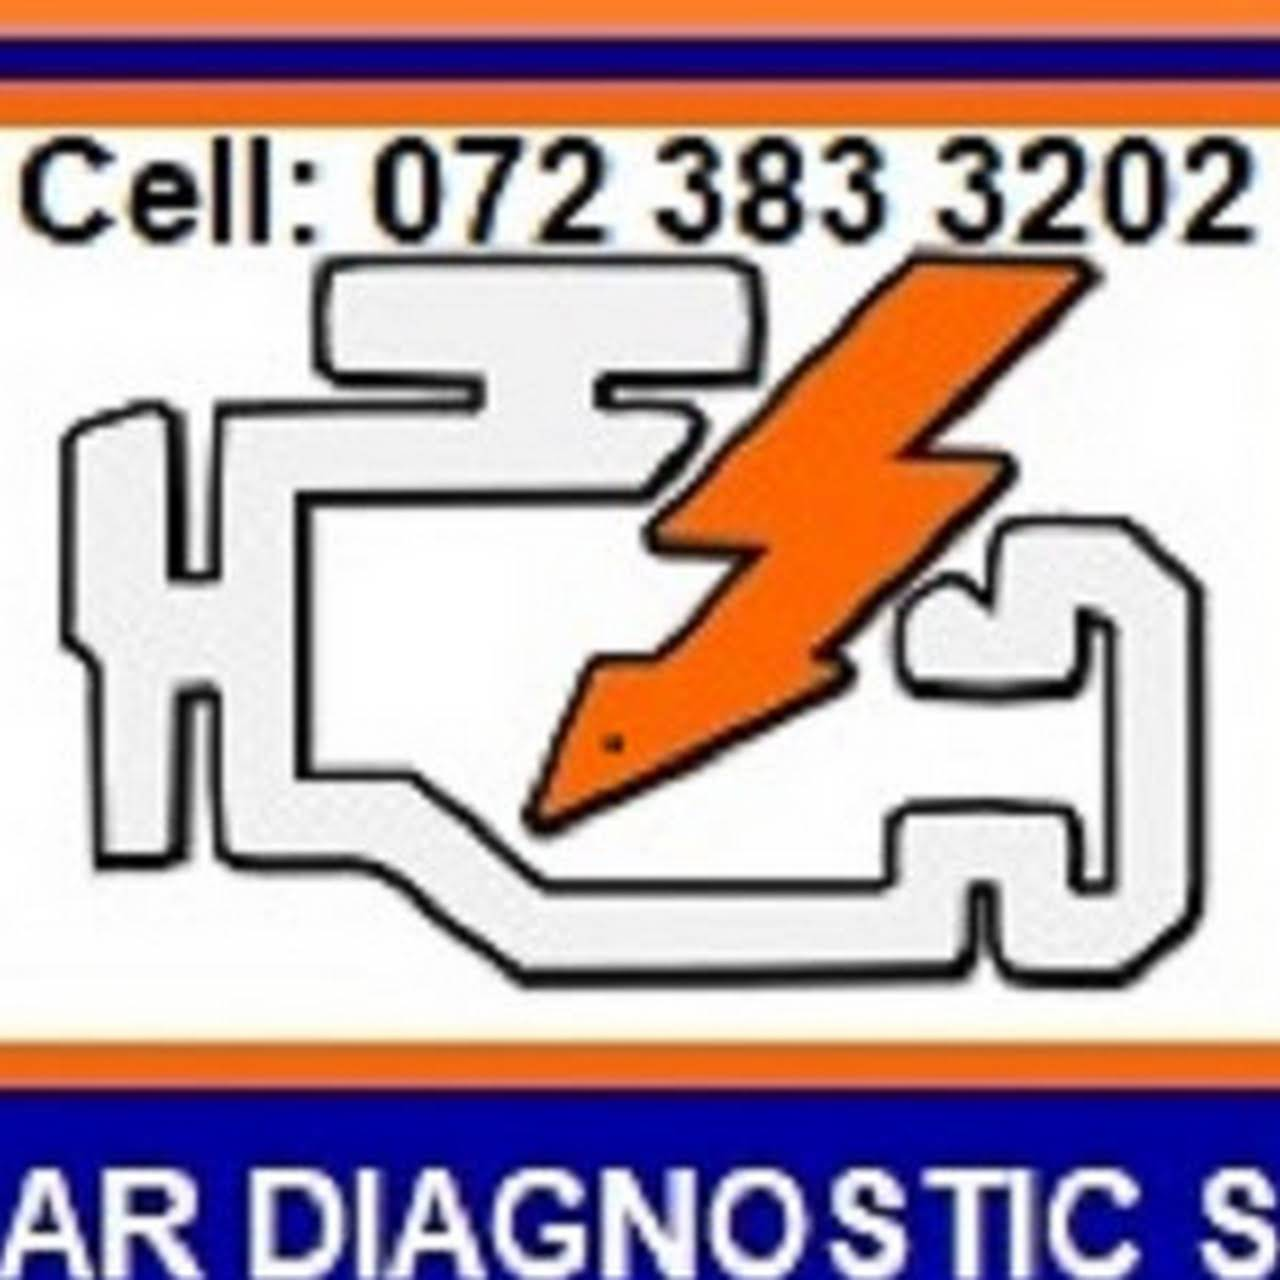 Car Diagnostic SA - Top quality brands diagnostic tools